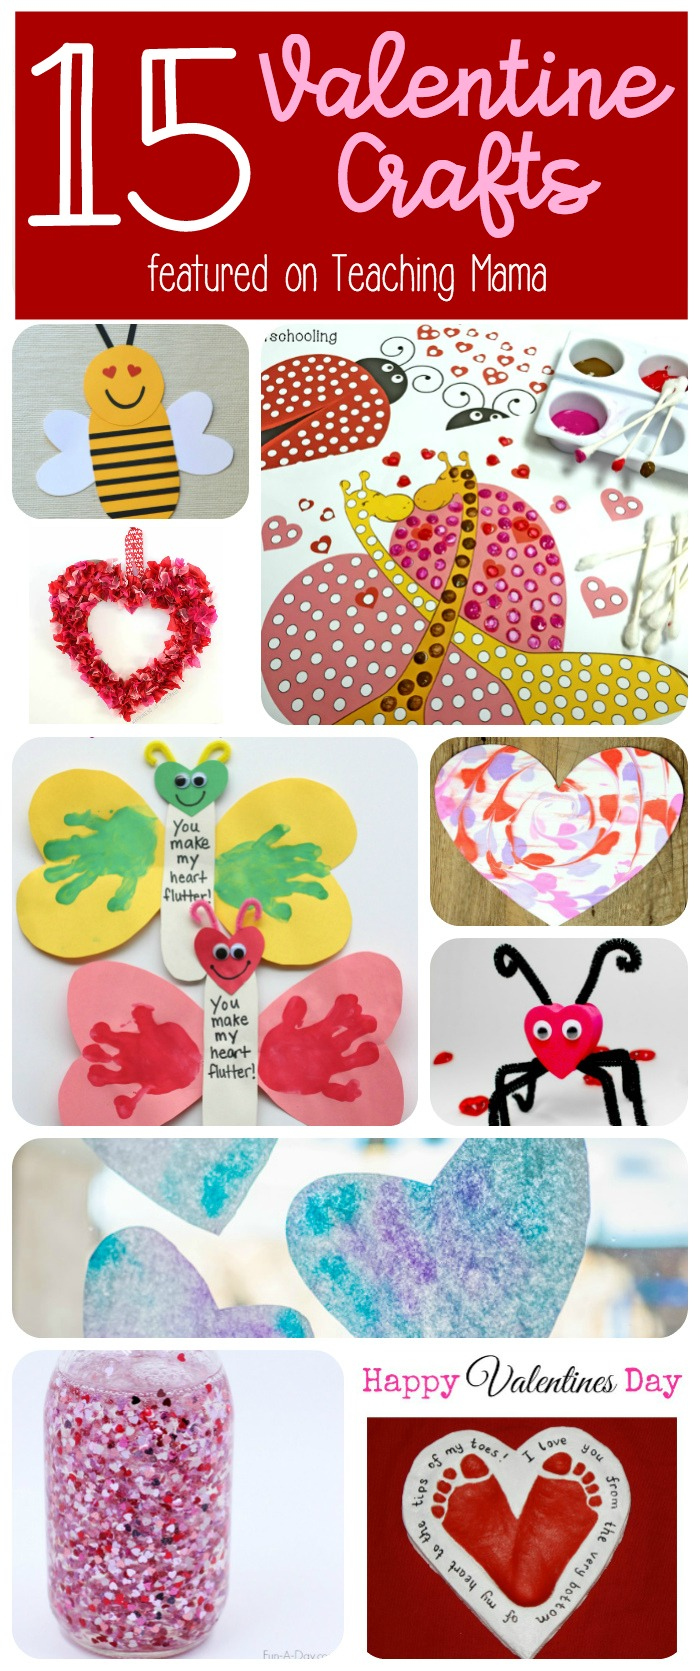 15 Valentine Crafts for Kids